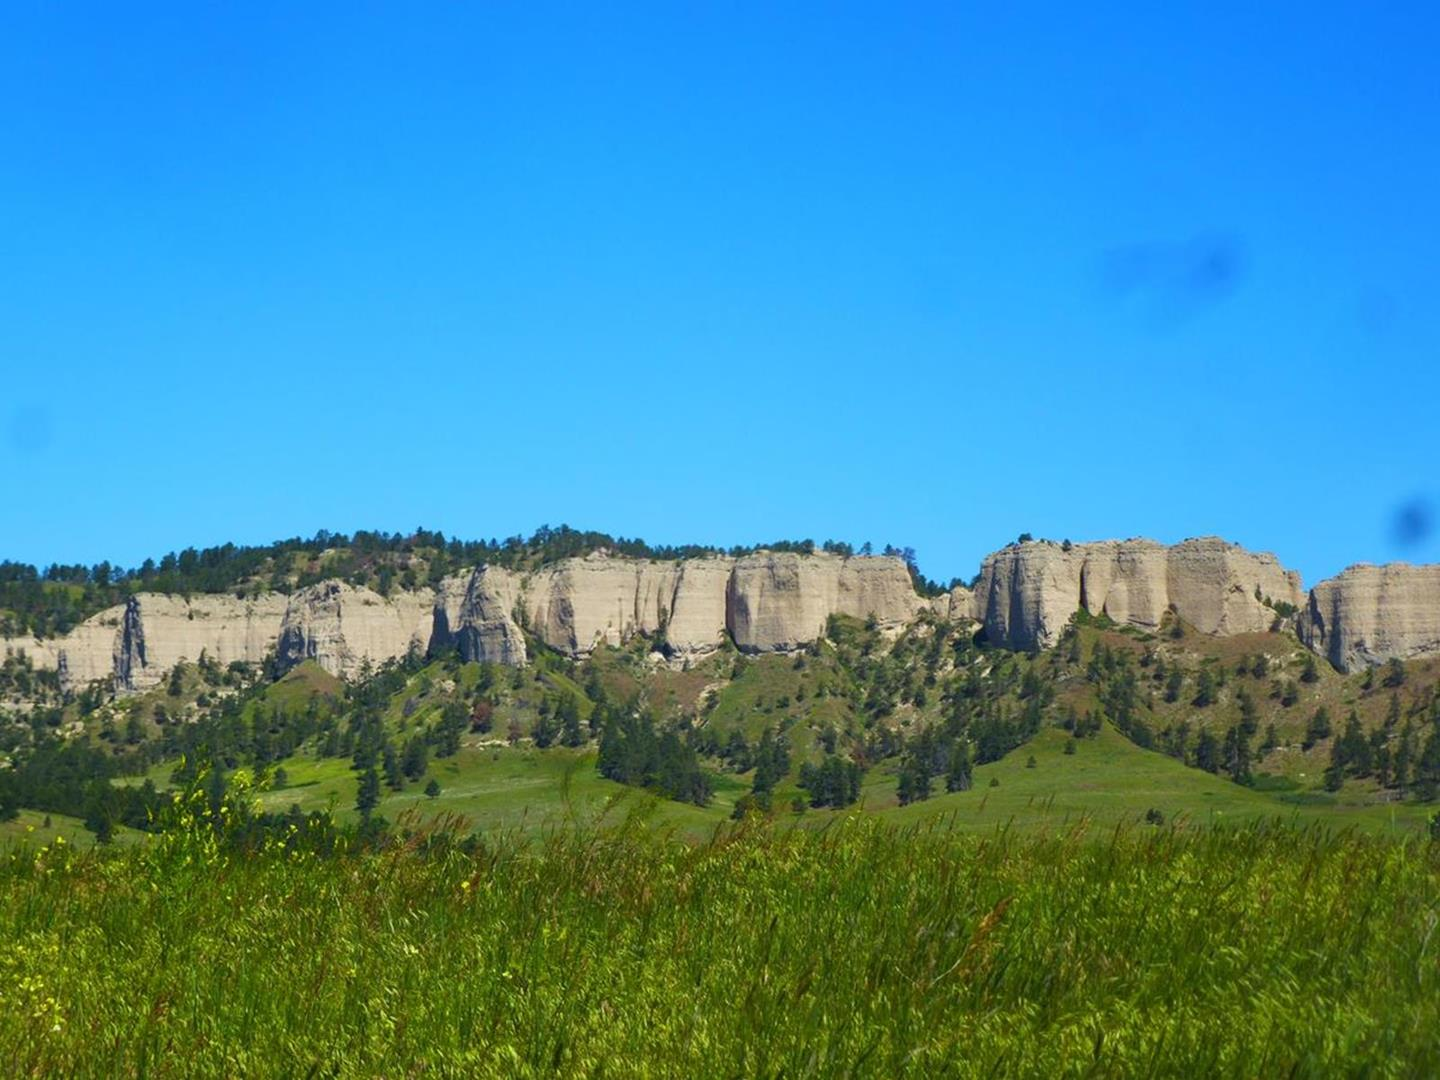 Fort Robinson State Park: Muster Station for Troops